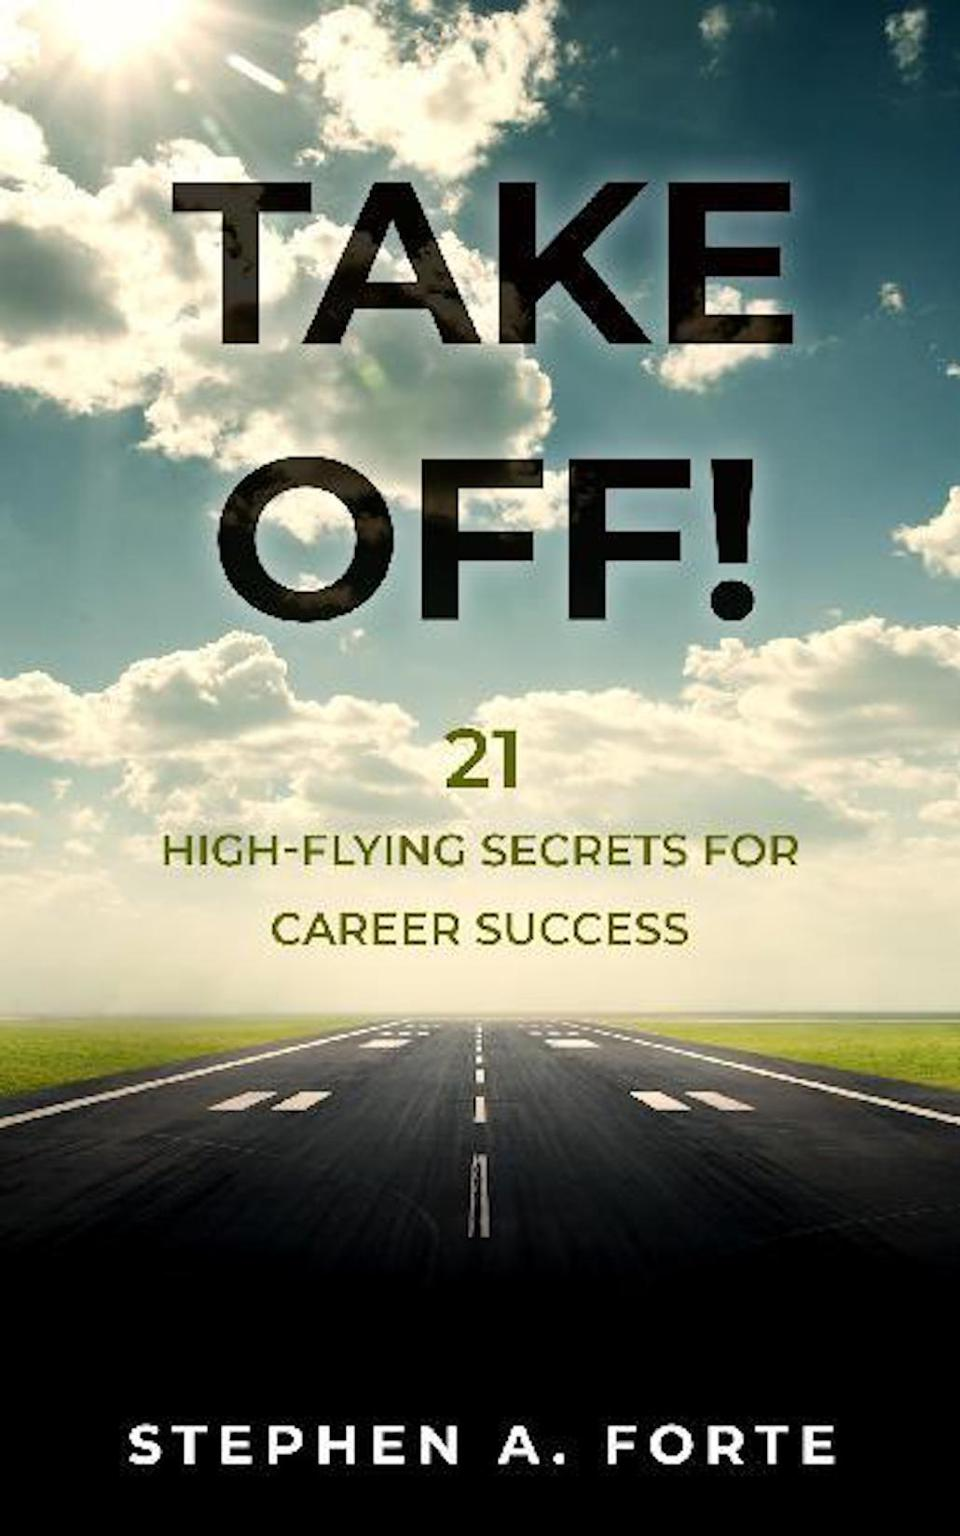 Take Off!: 21 High-Flying Secrets for Career Success by Stephen A. Forte